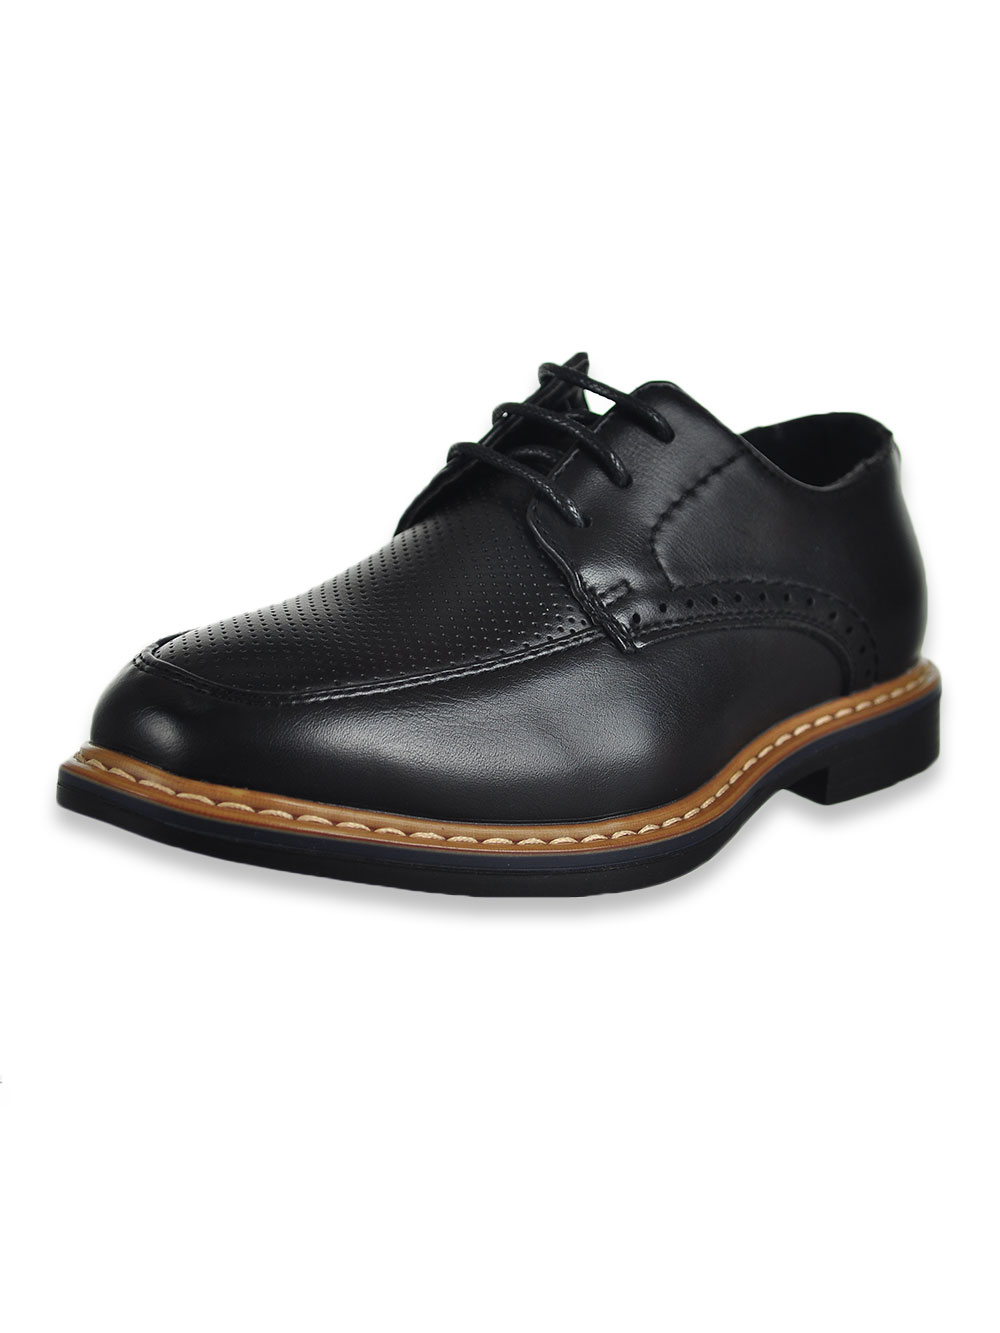 Dress Shoes Lace-Up Vamp